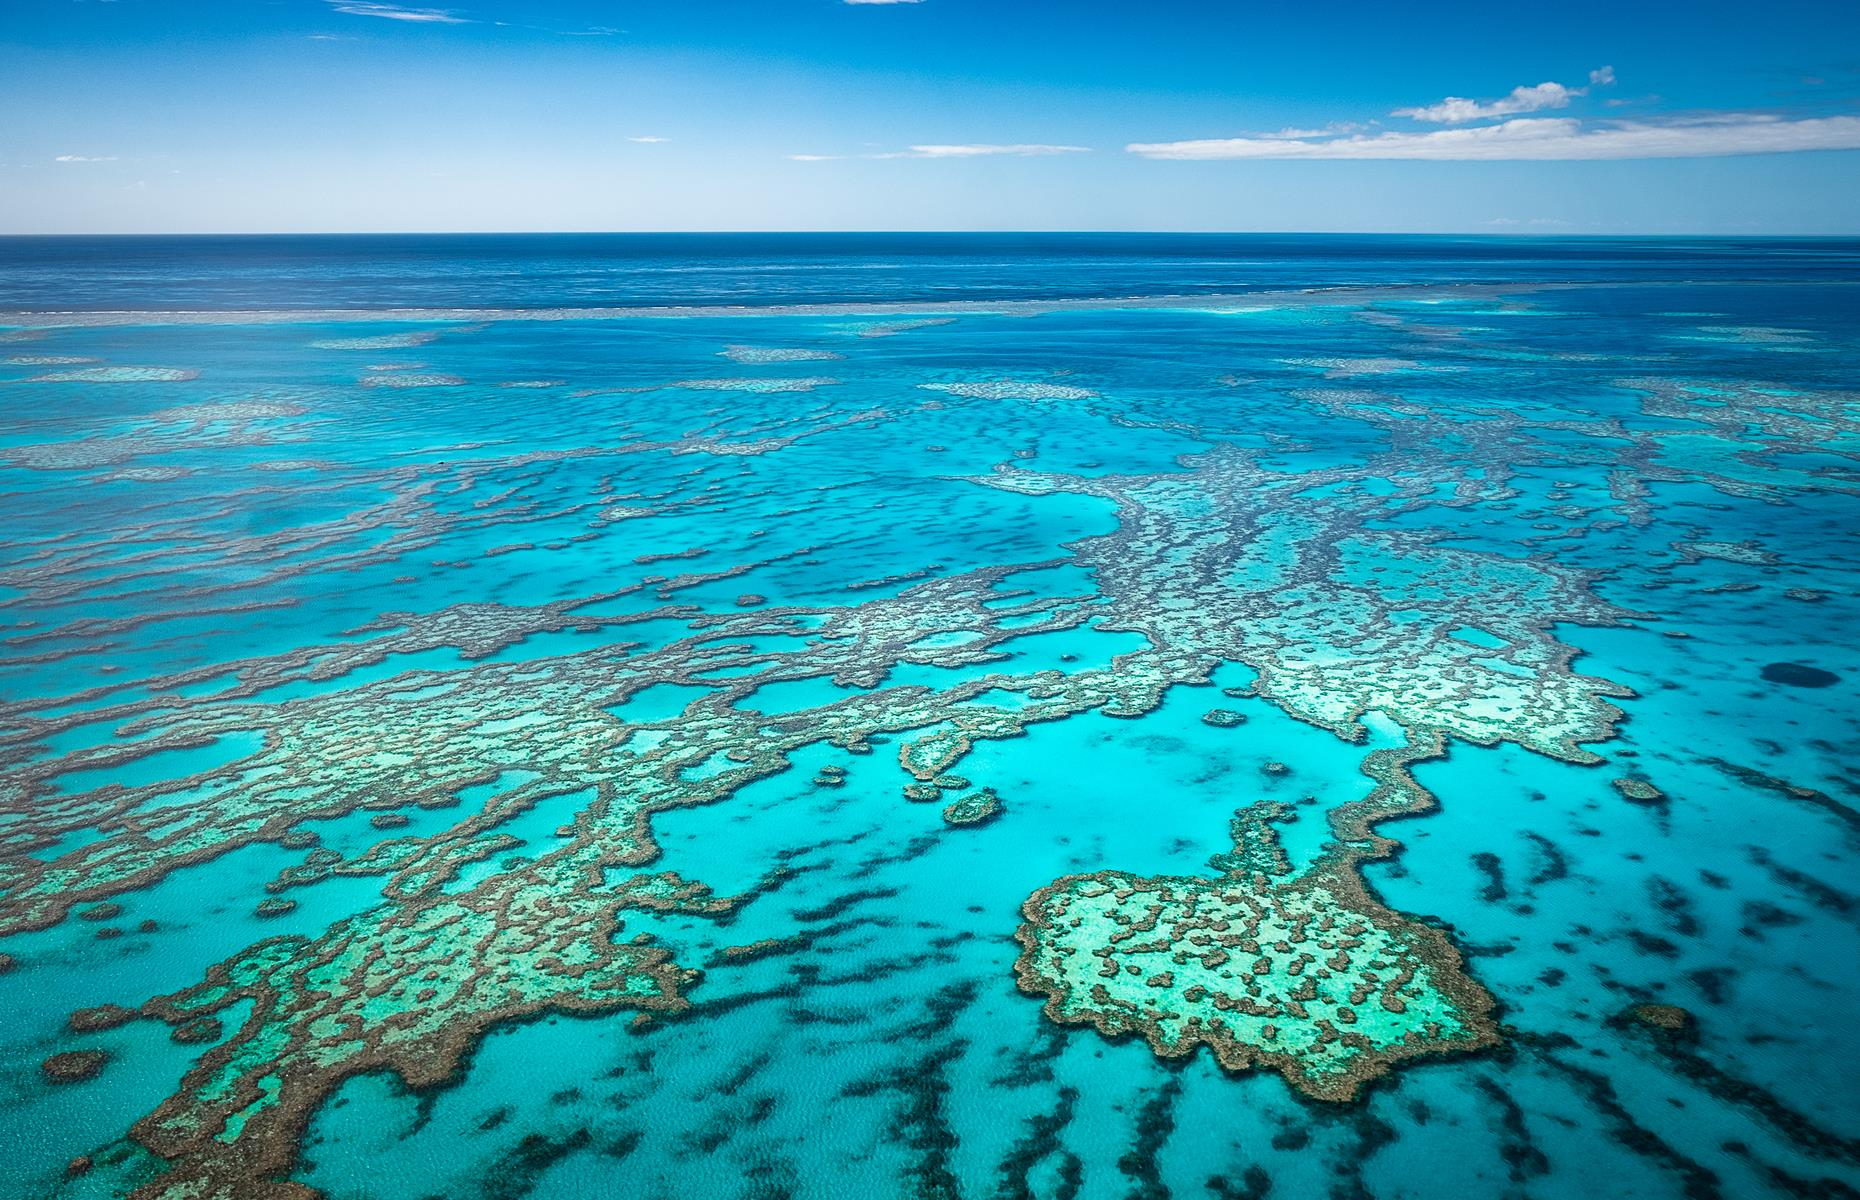 Slide 2 of 30: The Great Barrier Reef is famously so vast it can be viewed from space. It looks good both underwater and from dry land. It's the world's largest reef system, made up of nearly 3,000 reefs and encompassing more than 135,000 square miles (350,000sq km). It's also home to whales, dolphins, sea turtles and thousands of species of fish. Even without all that, the dazzling, dappled expanse of blue is pretty lovely to look at.